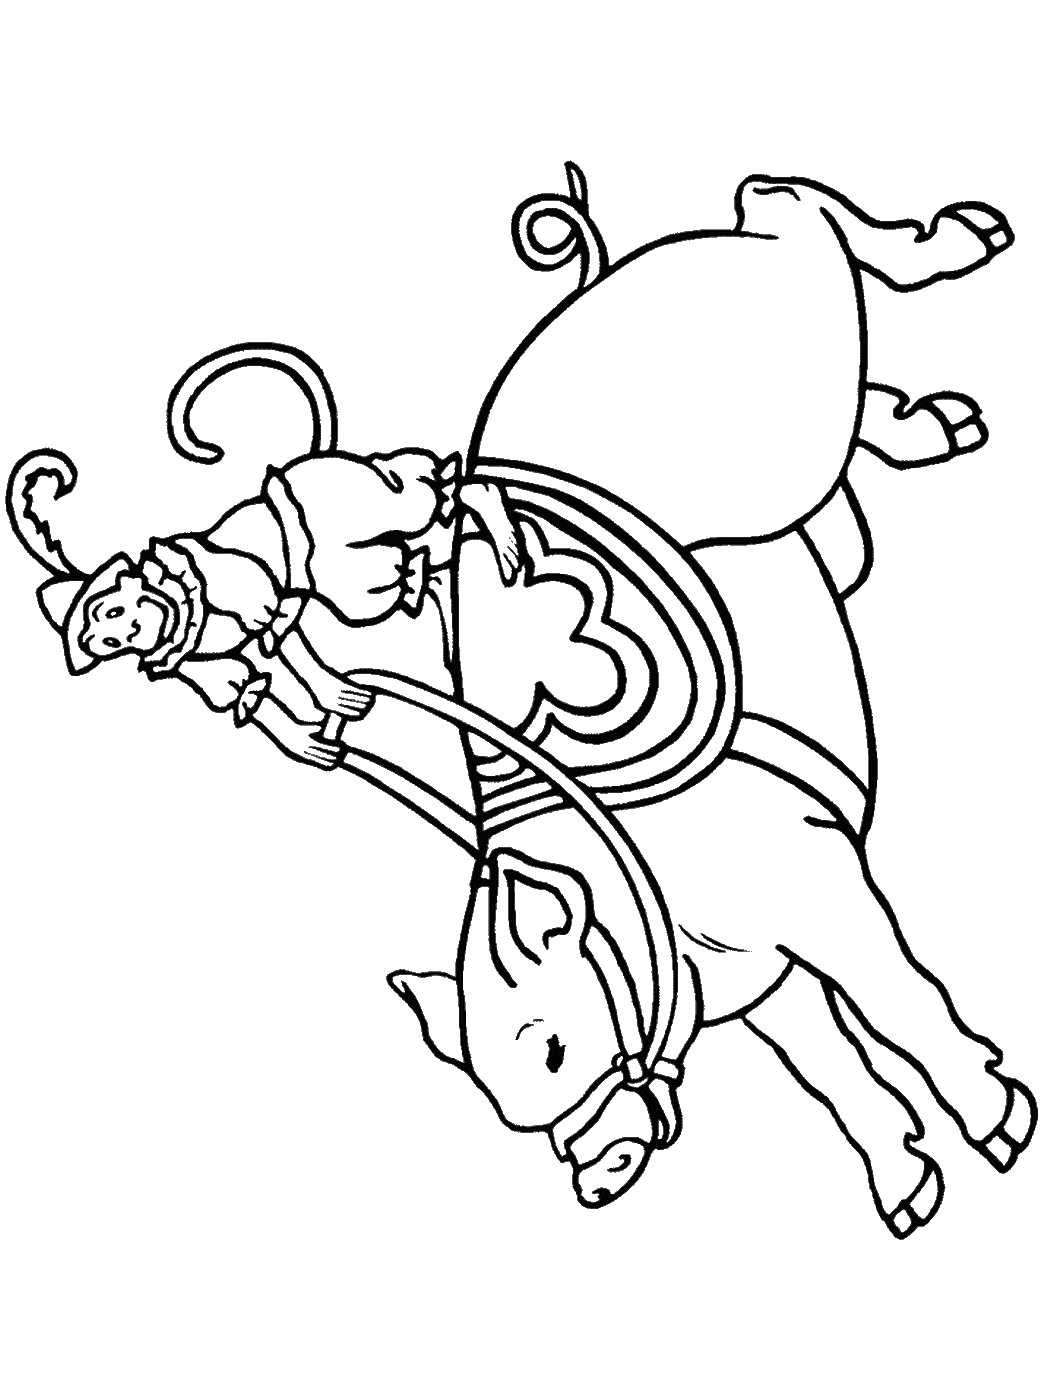 carnival clown coloring pages clown coloring pages for kids coloring worksheets 3 pages coloring clown carnival